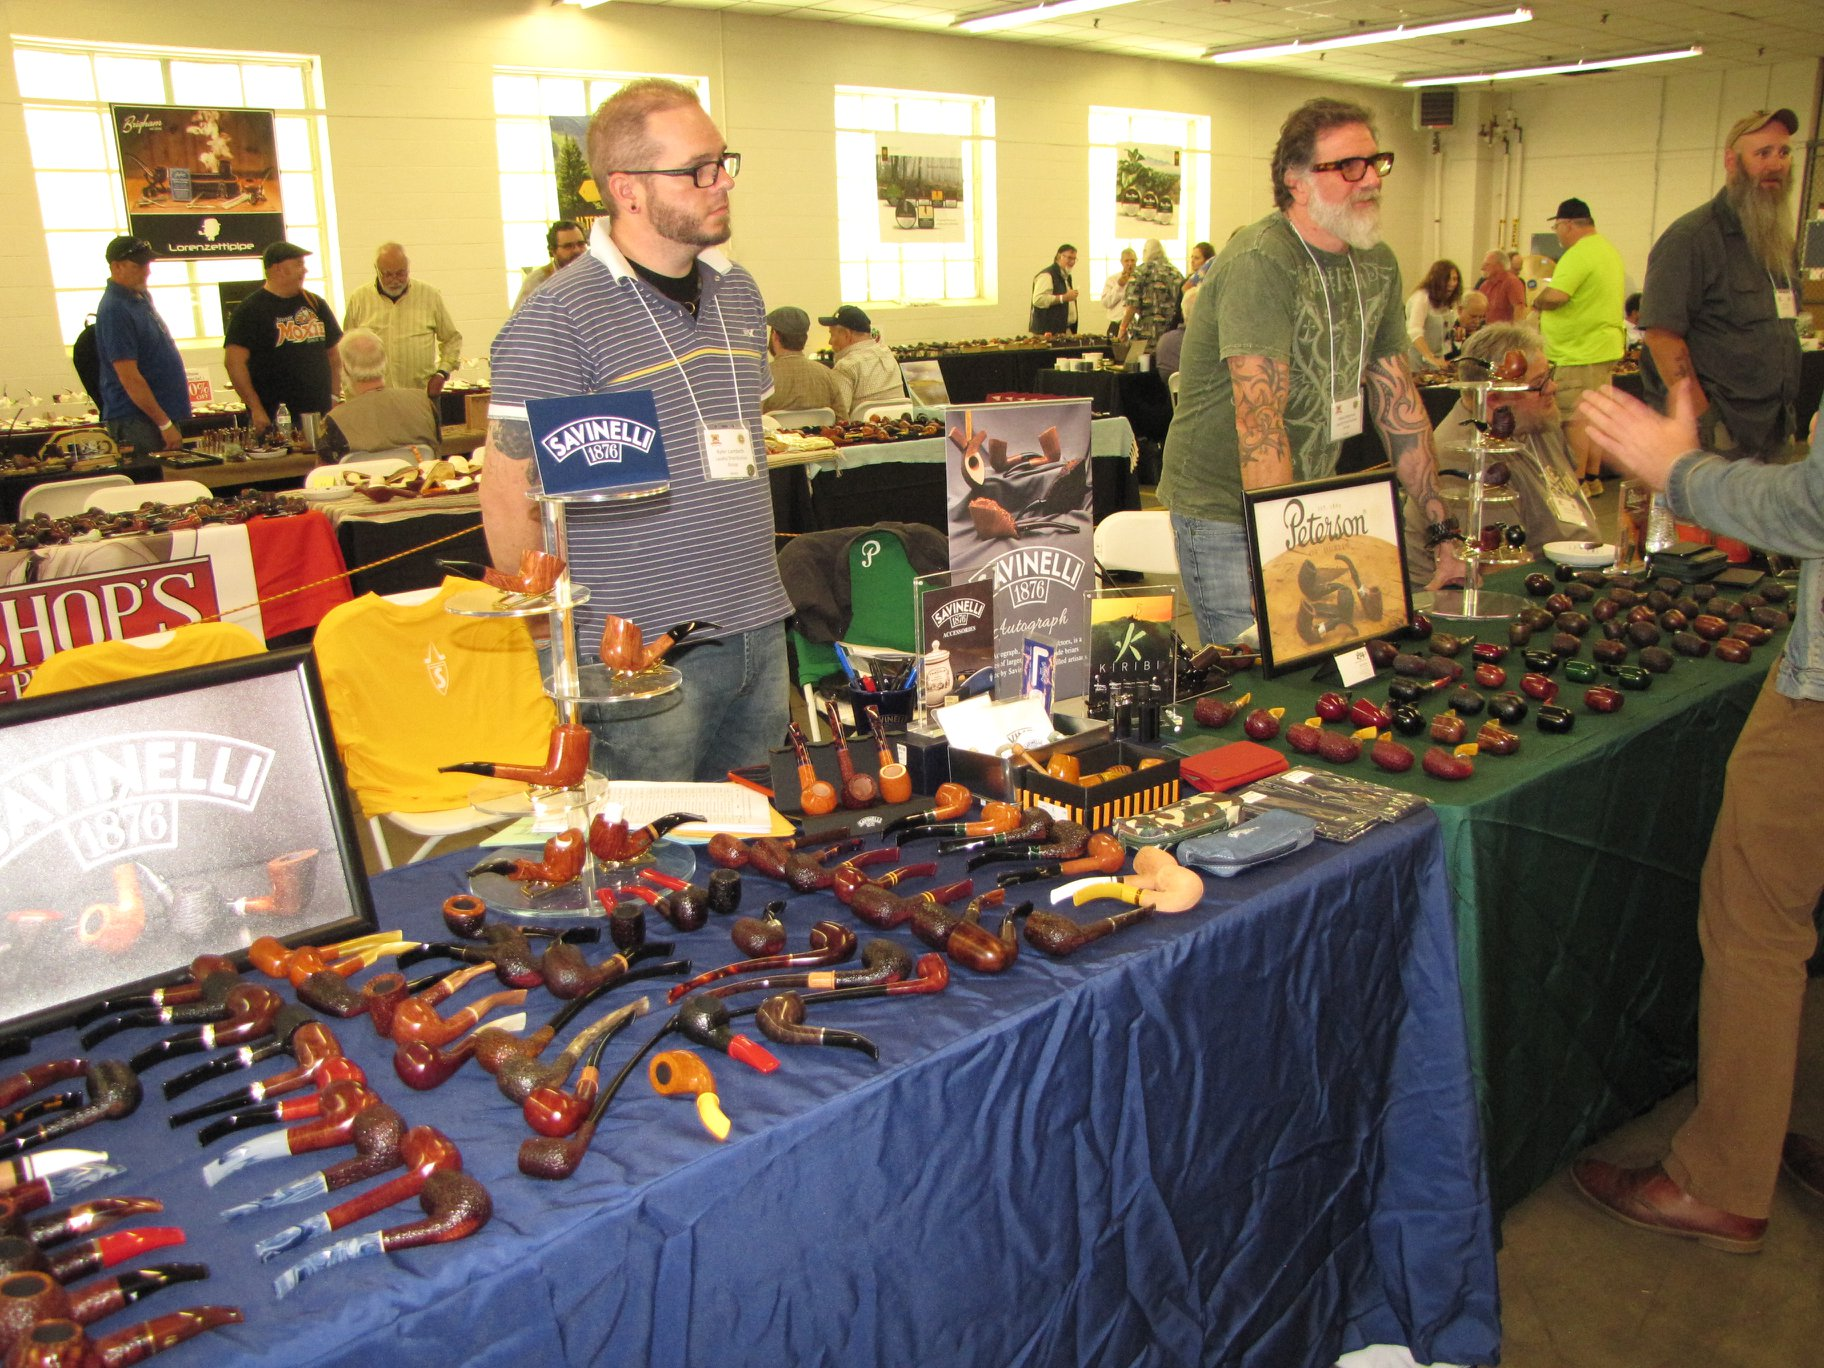 Richmond Pipe Show